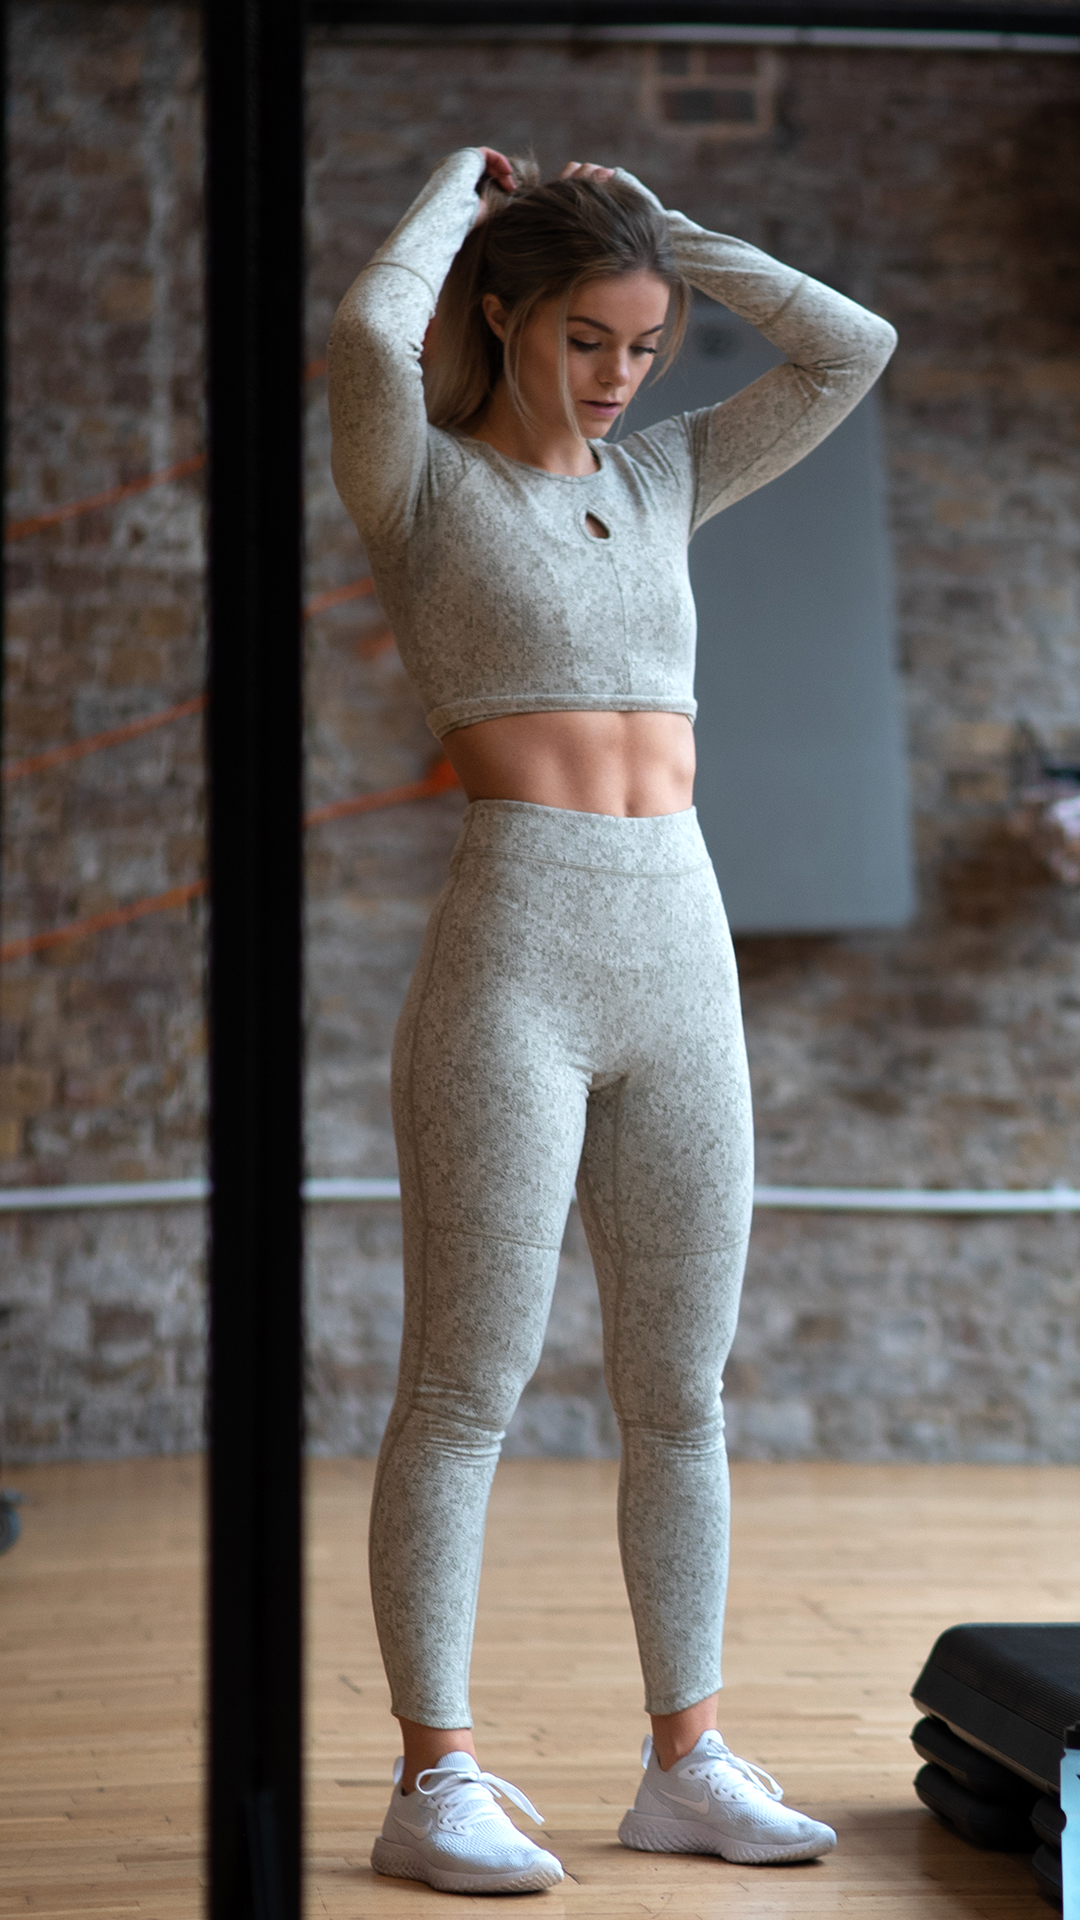 79cbe5ed19a617 Get tough with training in the Fleur Texture collection. Stefanie Moir,  Gymshark Athlete, wears the Washed Khaki Marl Fleur Long Sleeve Crop Top  and ...